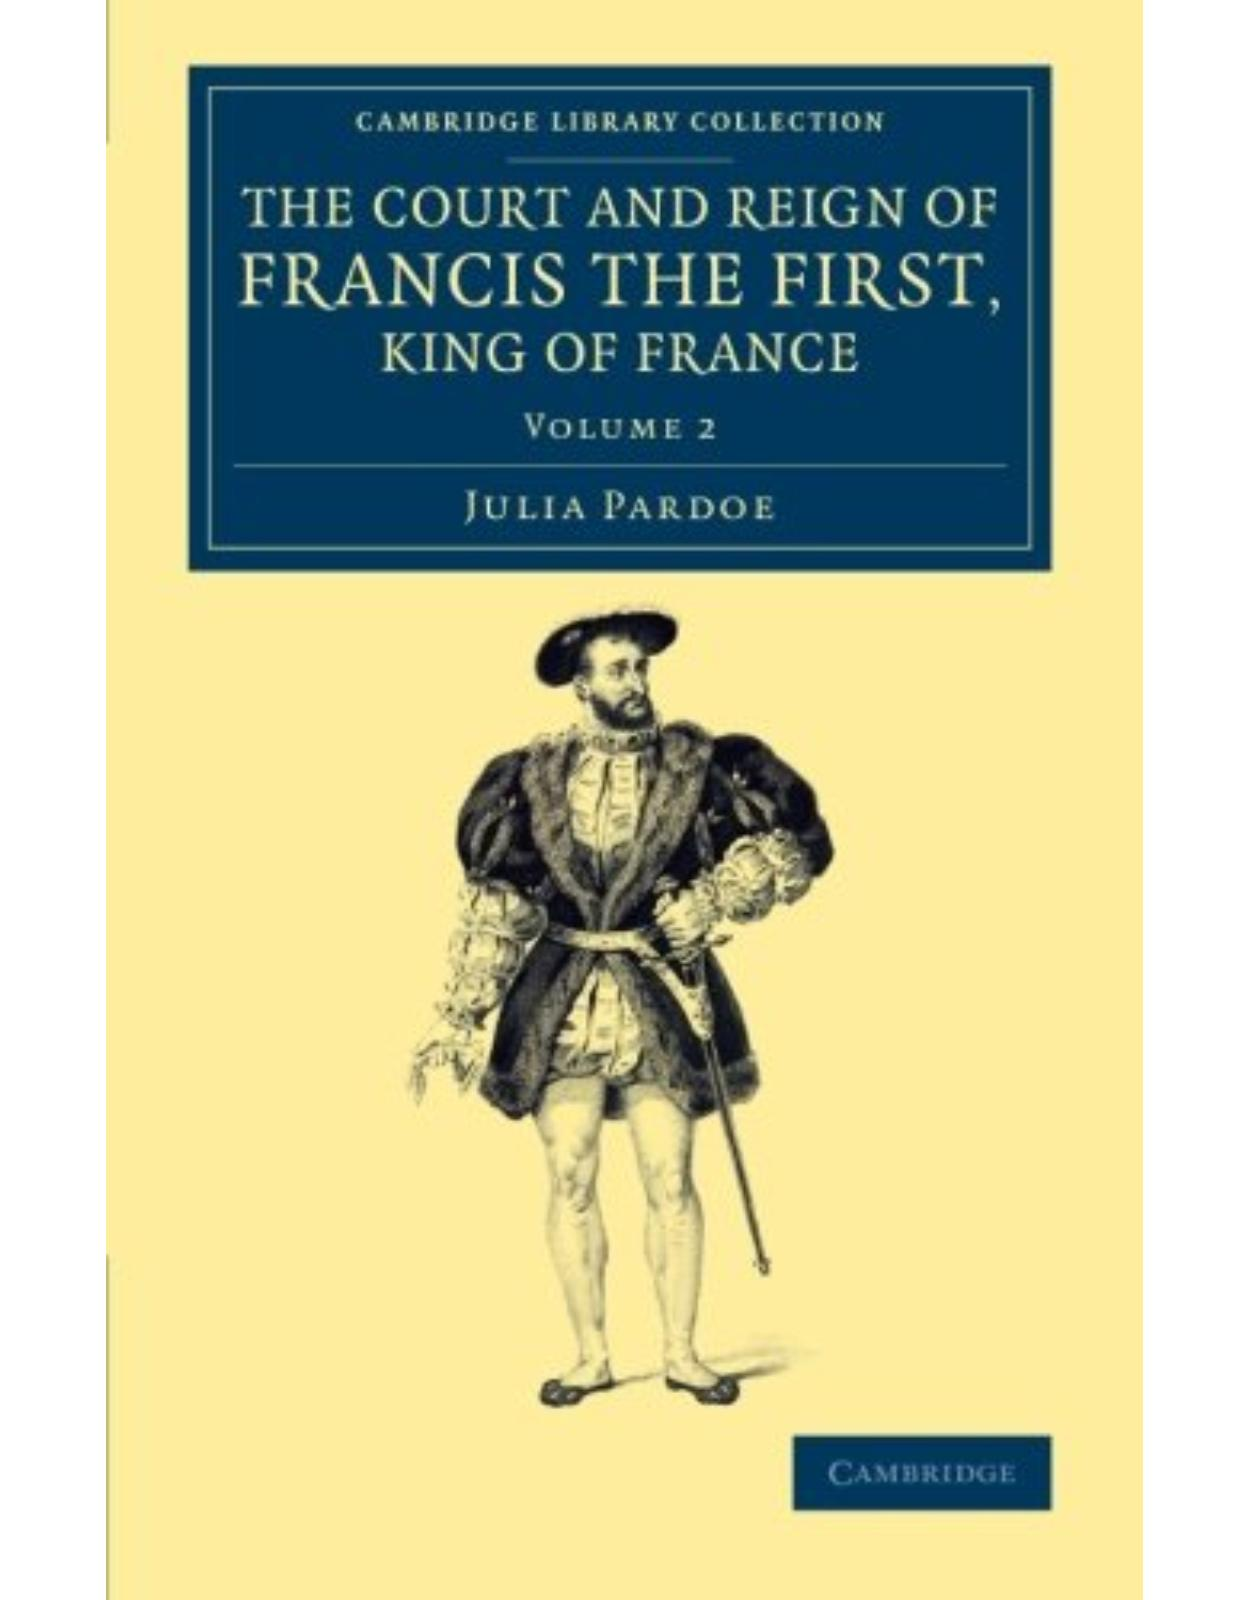 The Court and Reign of Francis the First, King of France: Volume 2 (Cambridge Library Collection - European History)